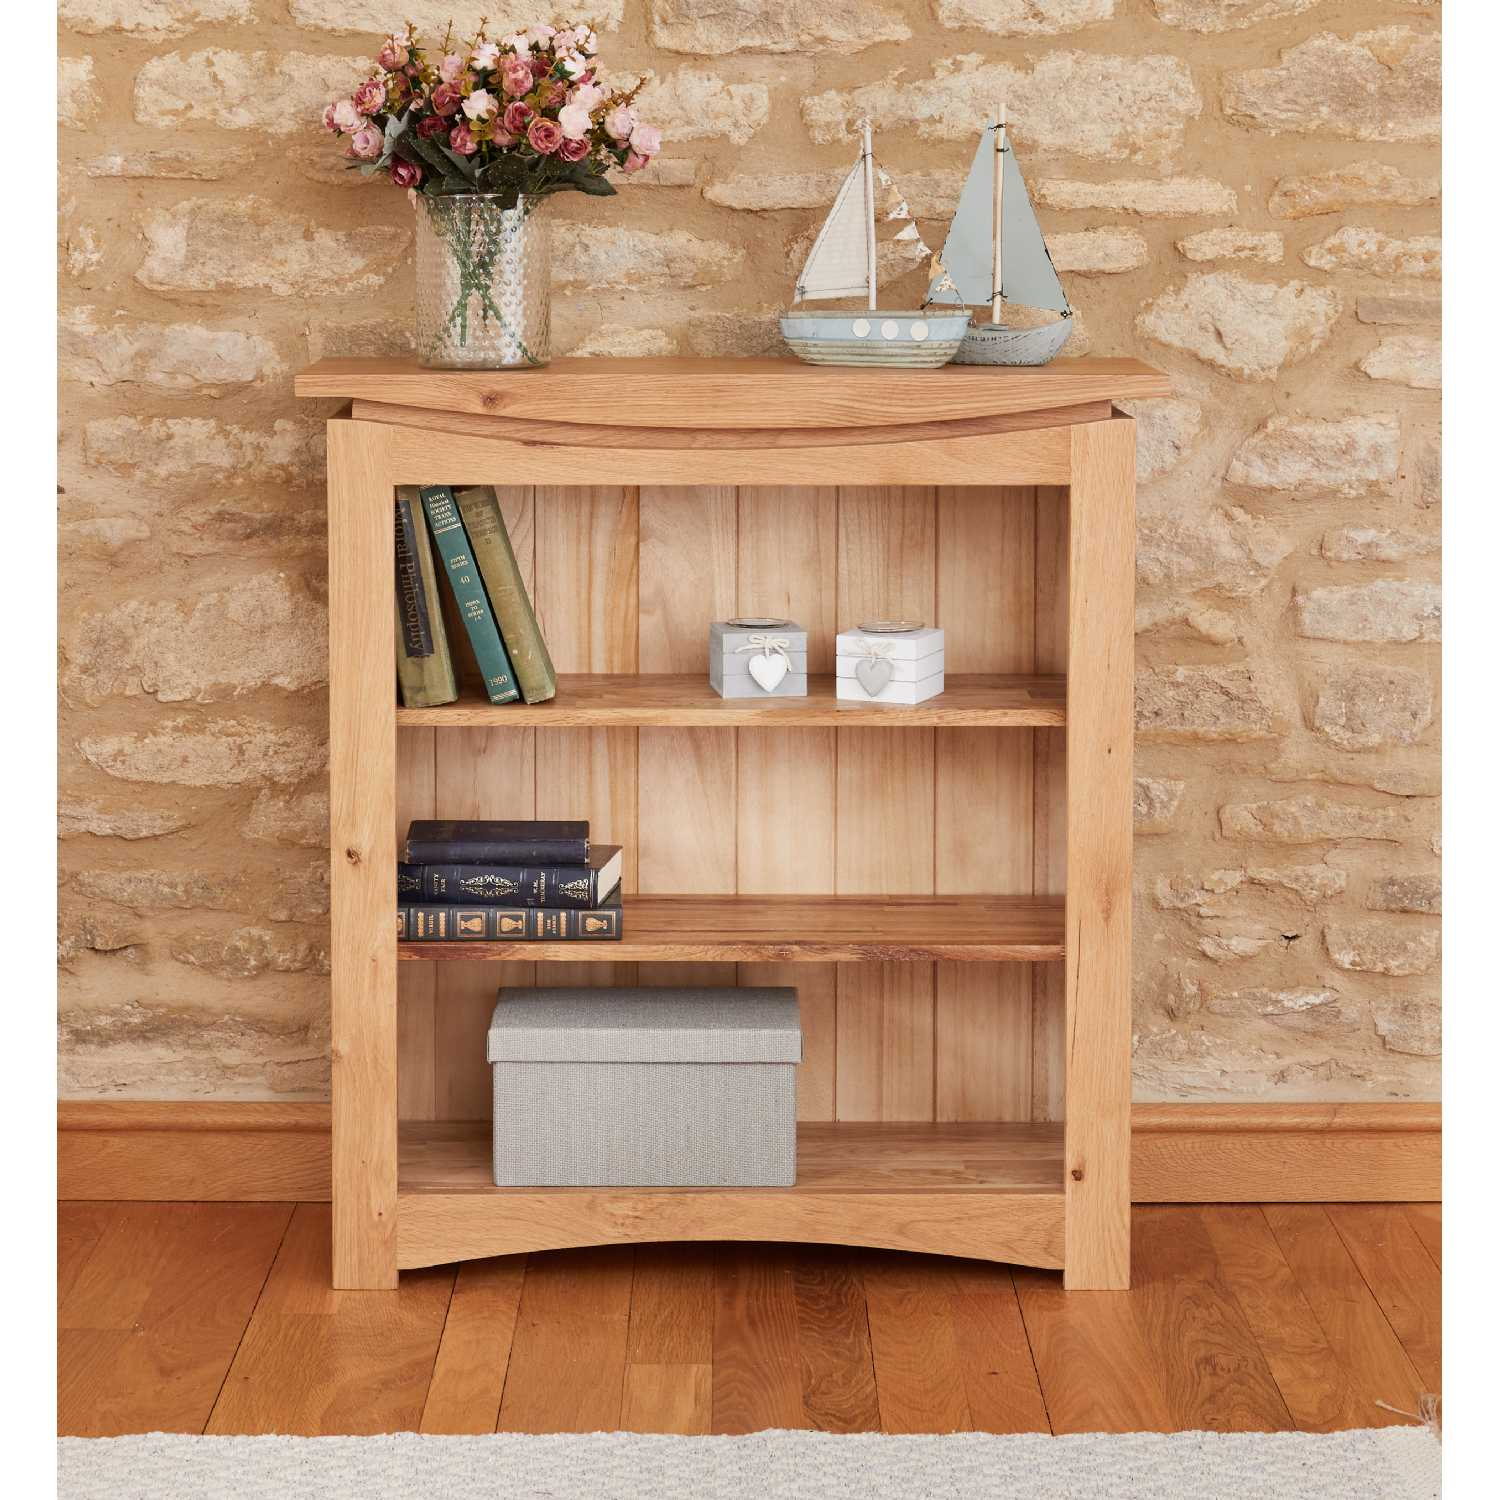 Modern Light Solid Oak Small Low Bookcase Shelf Display Shelf Unit